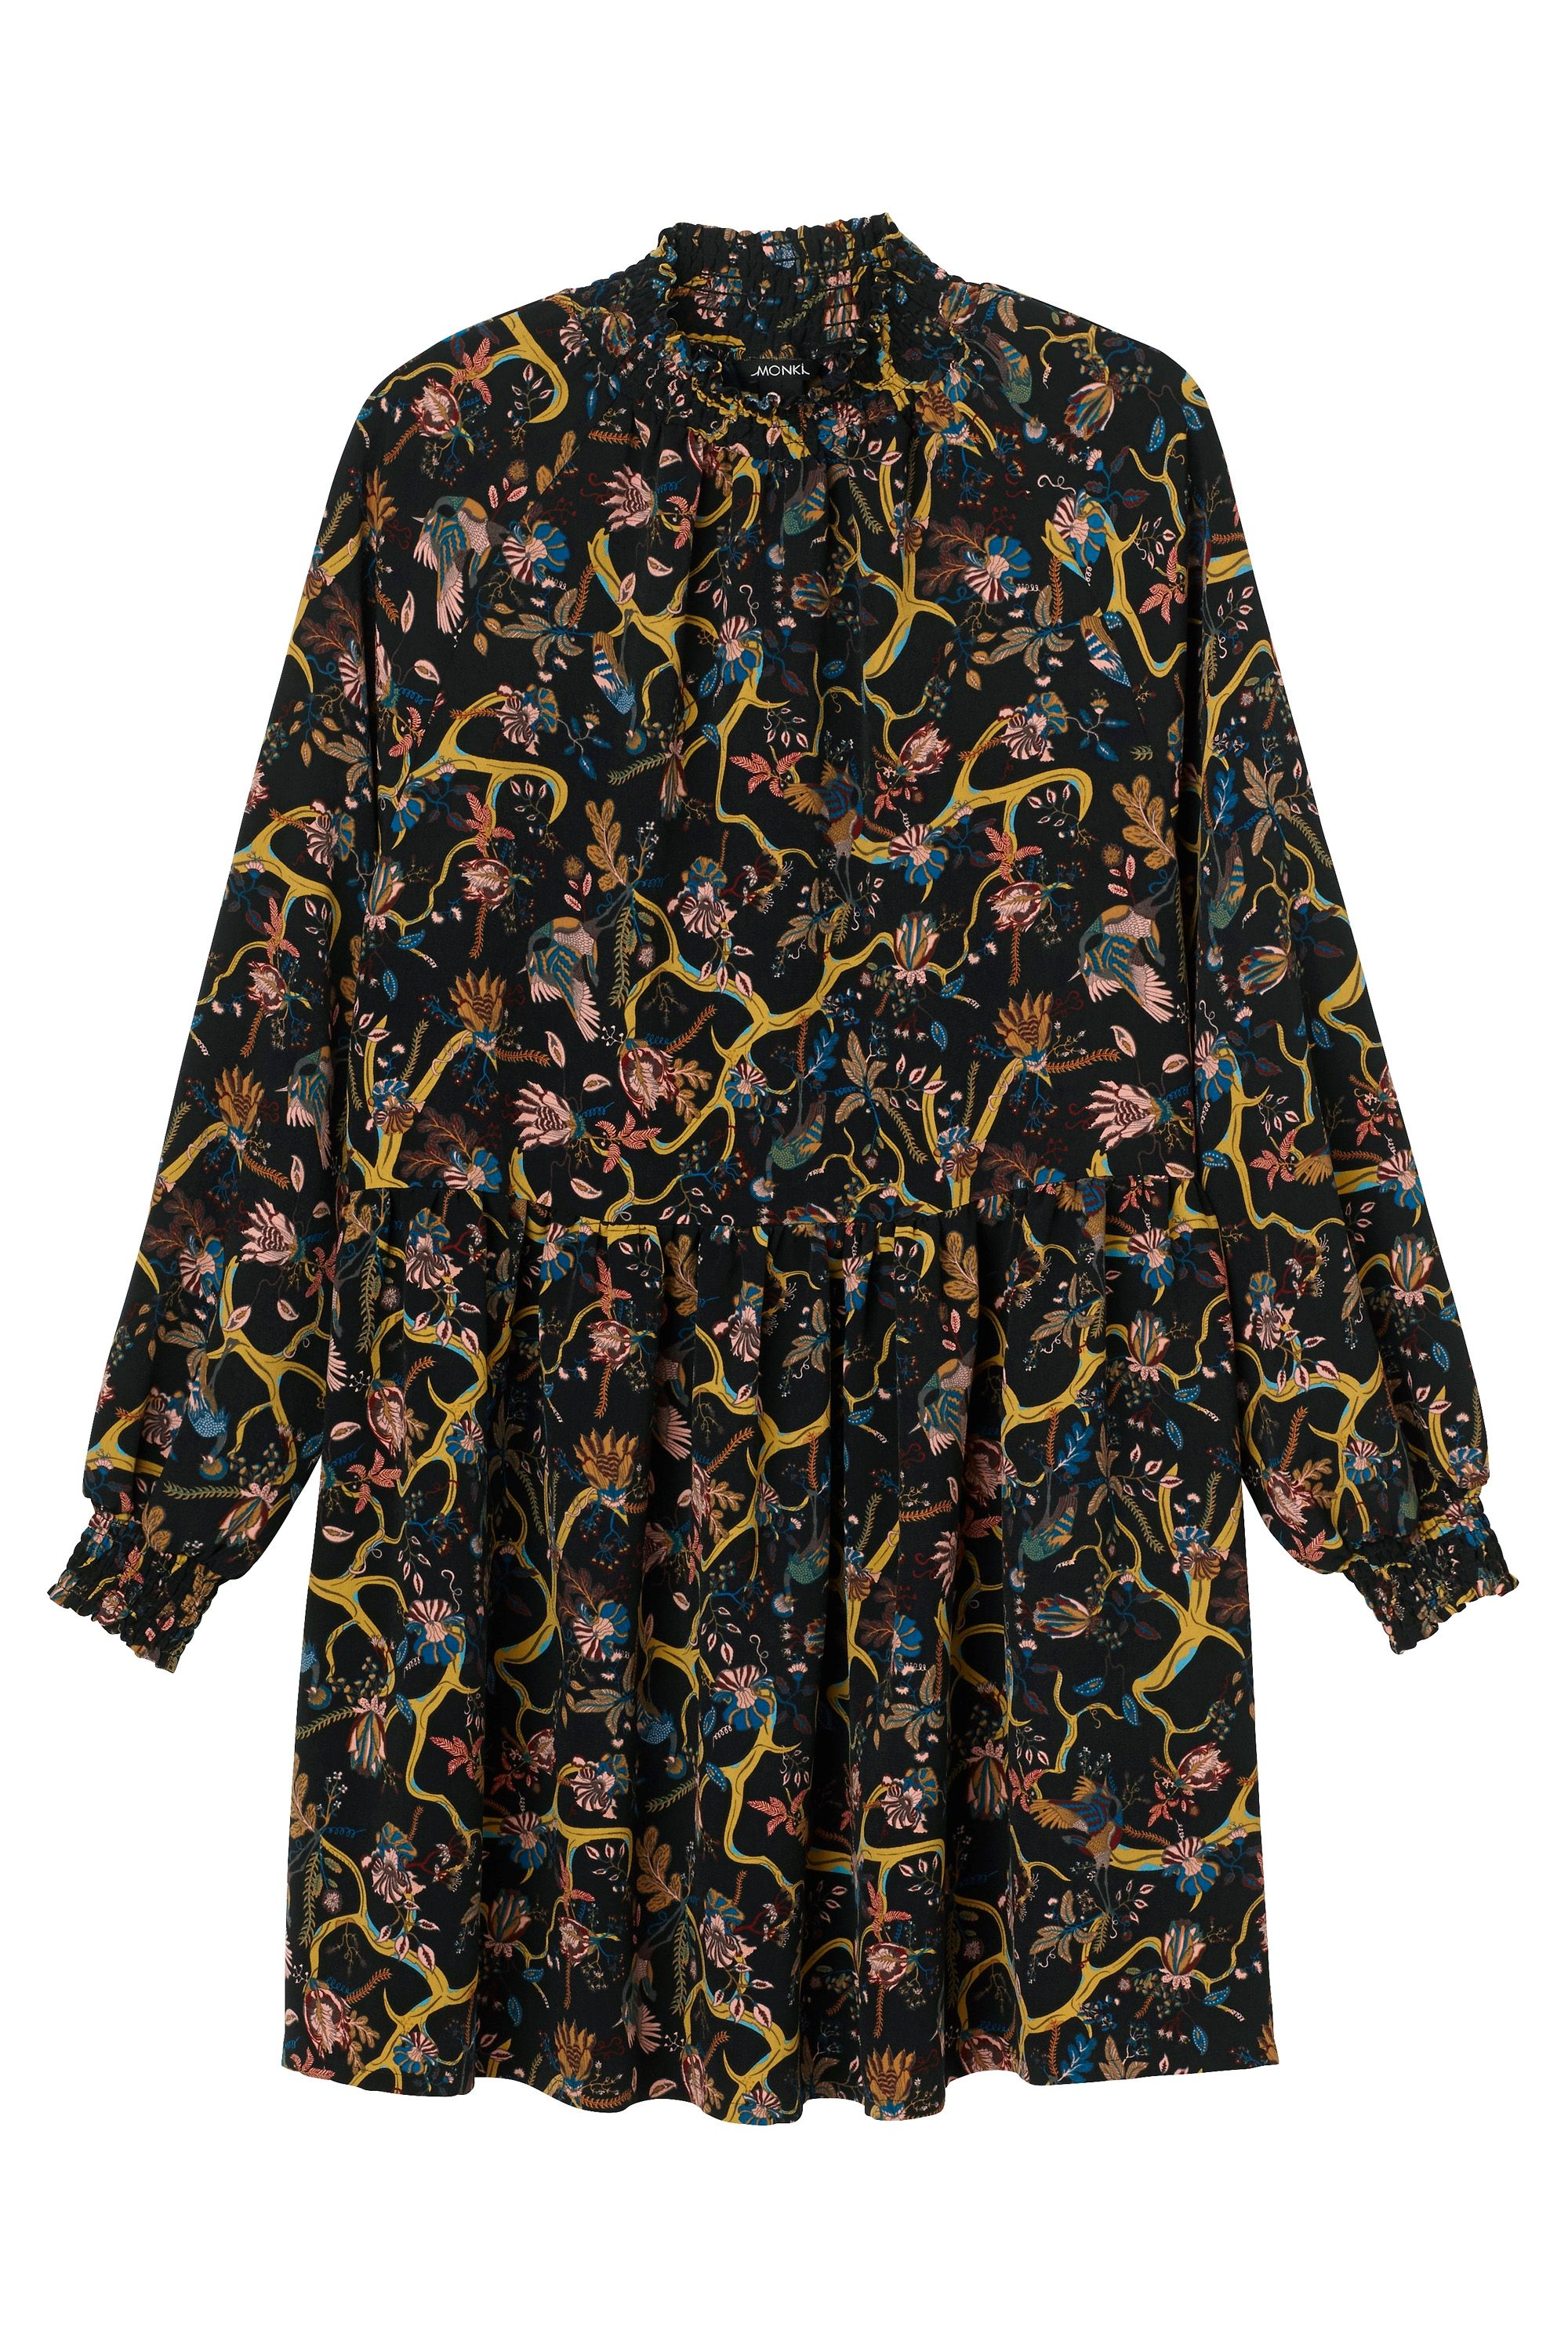 Monki | View all new | Ruby dress